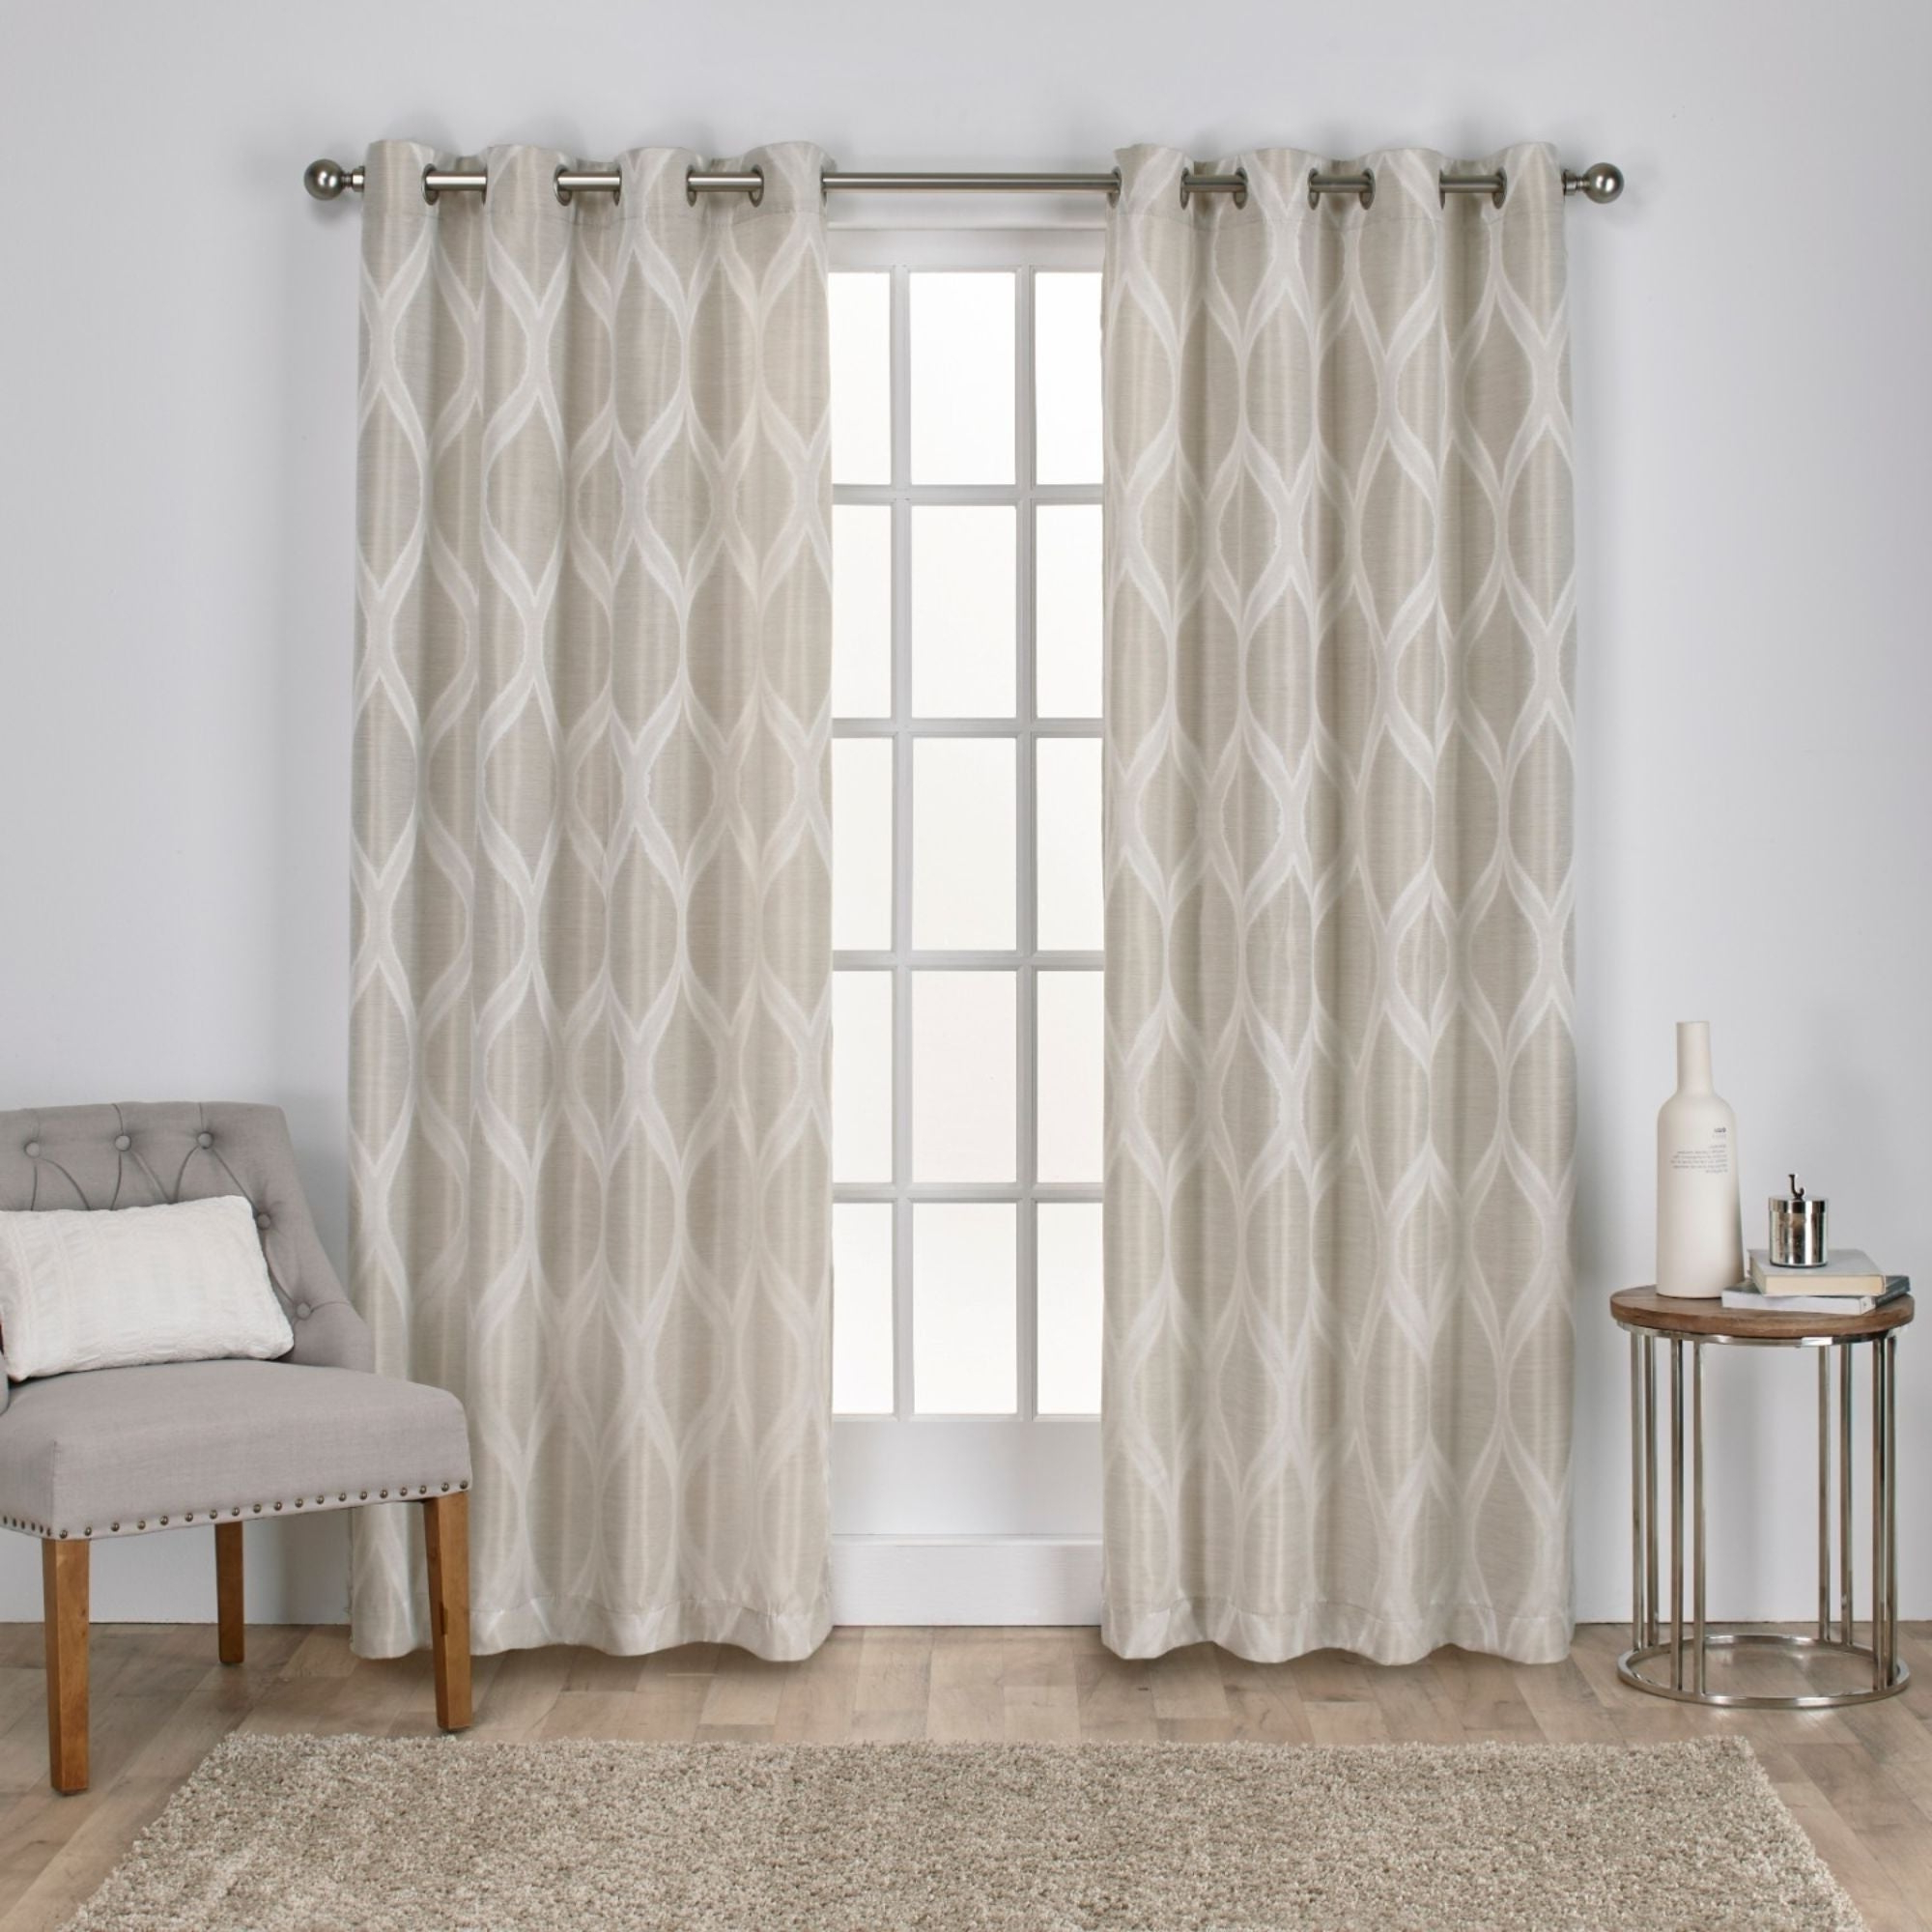 The Curated Nomad Duane Jacquard Grommet Top Curtain Panel Pairs Inside Favorite The Curated Nomad Carlton Jacquard Grommet Top Curtain Panel Pair (View 3 of 21)